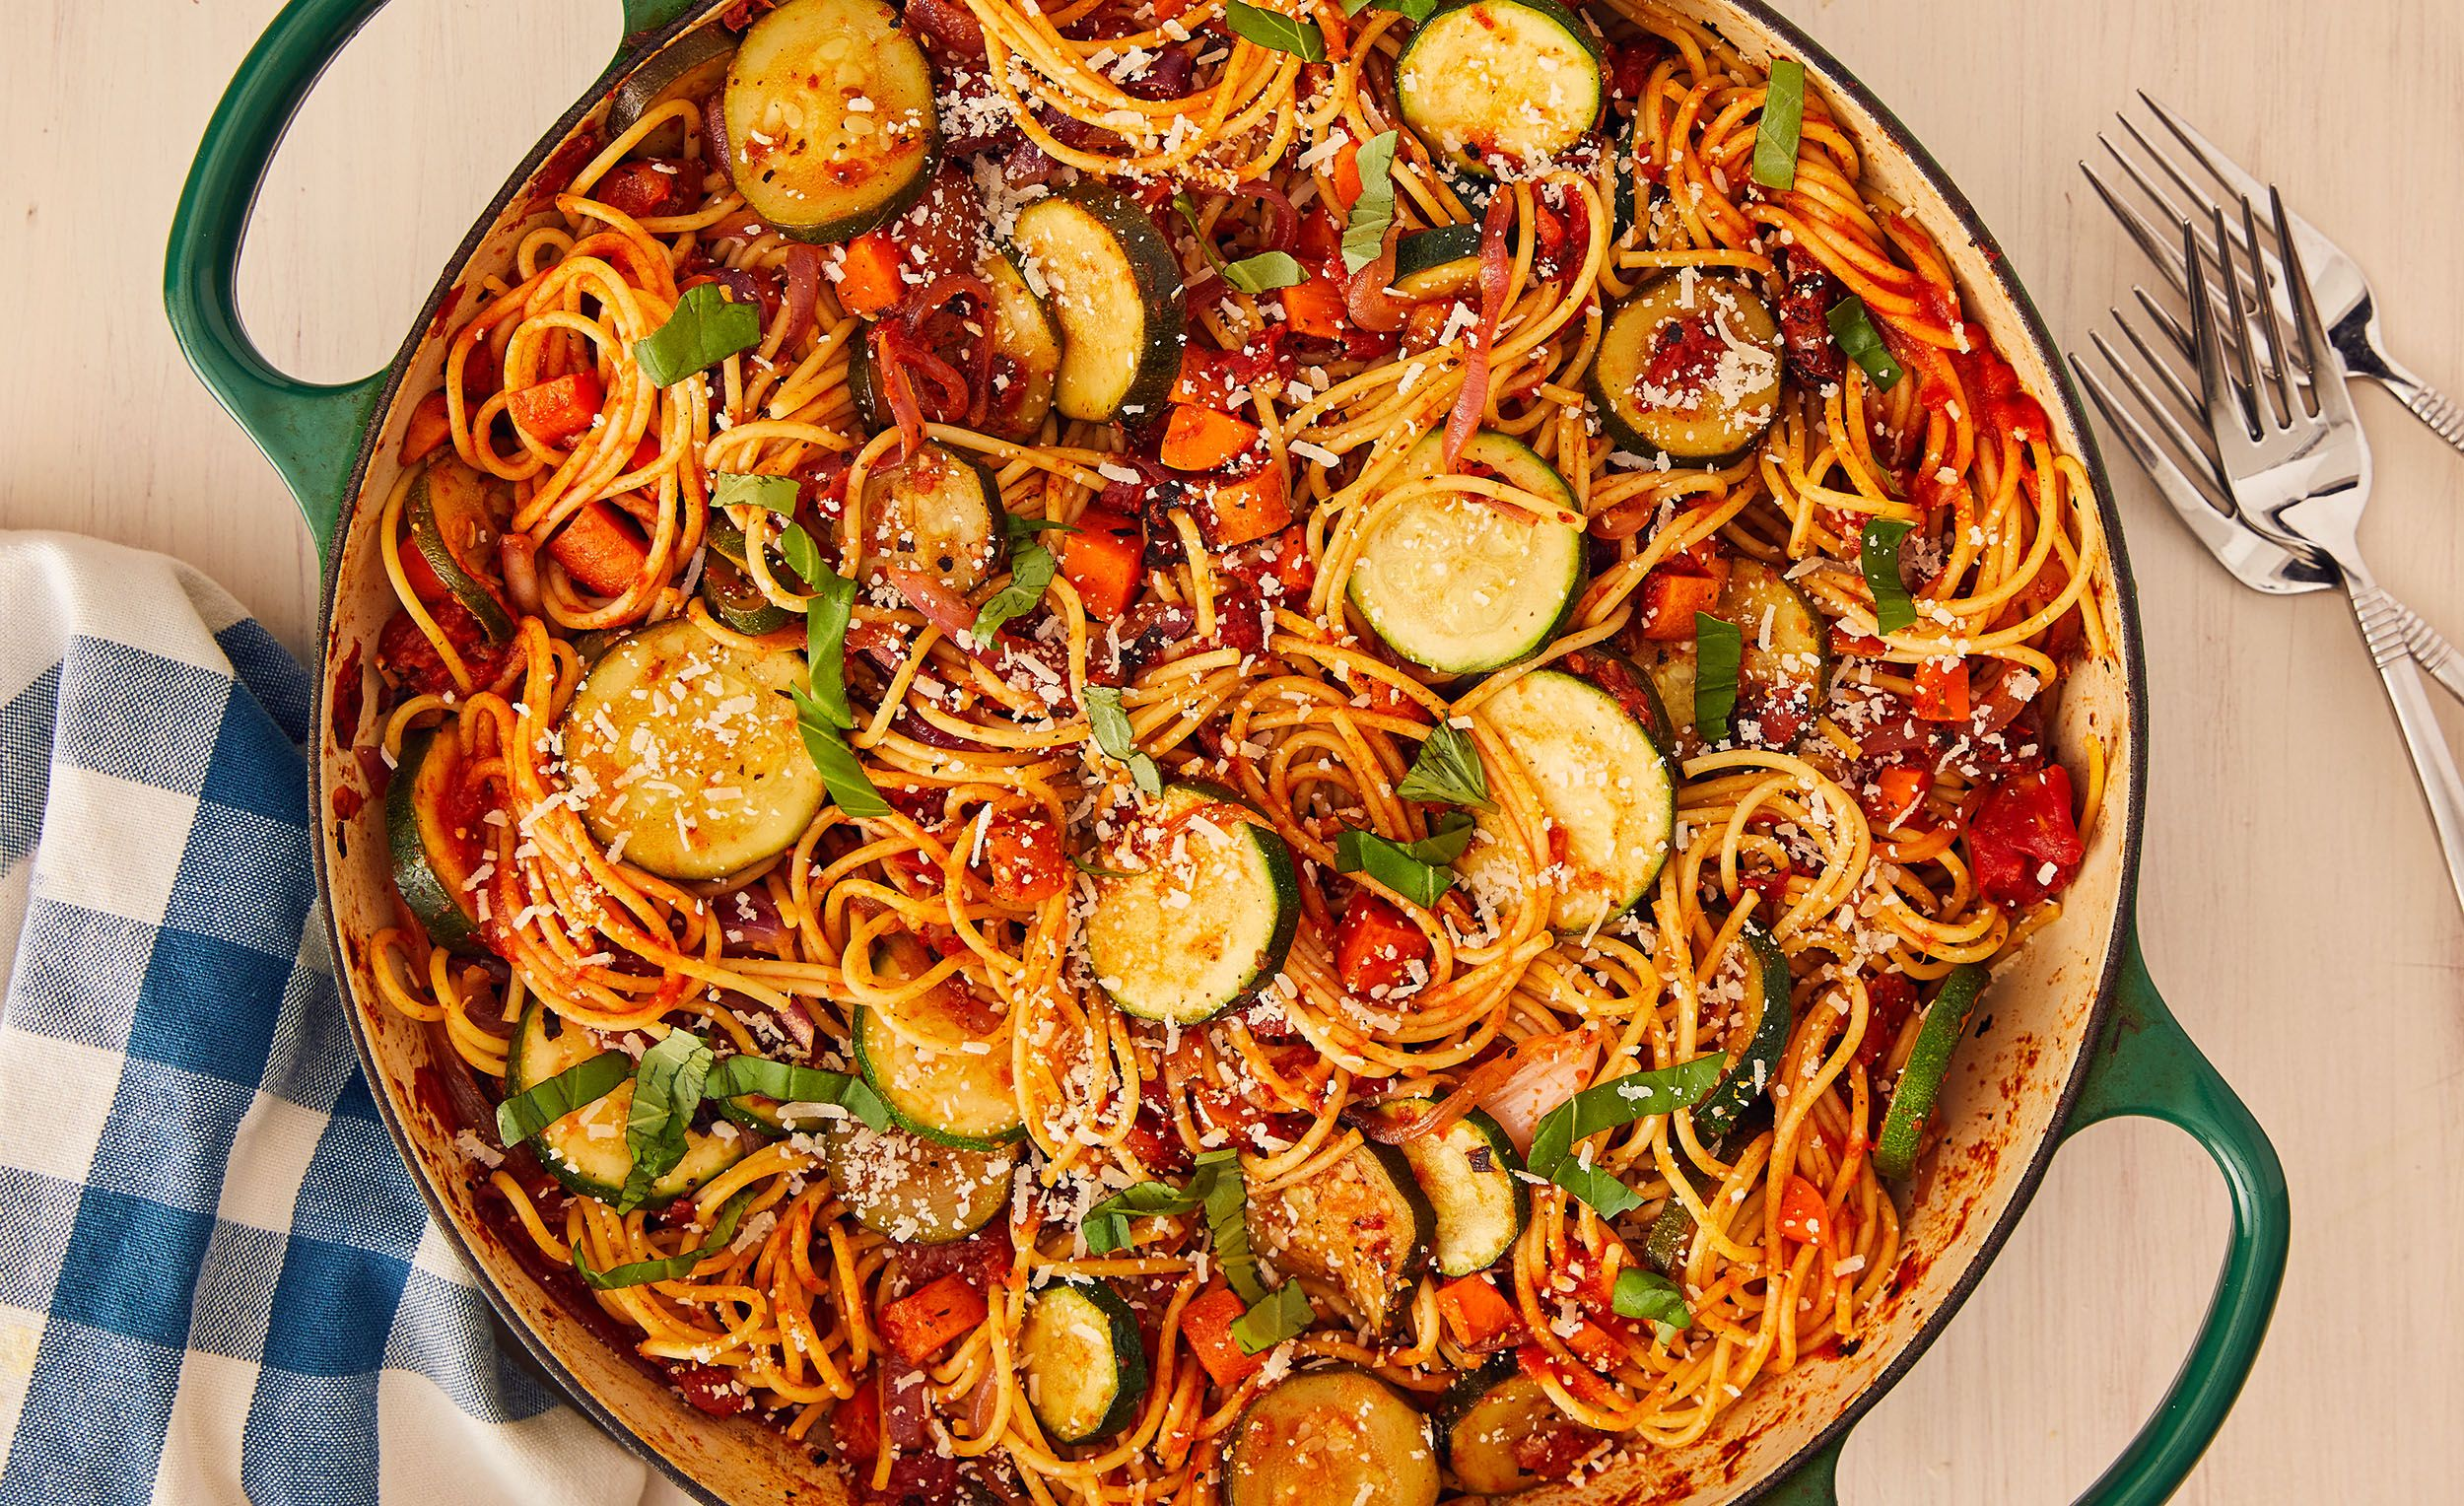 Best Vegetable Spaghetti Recipe How To Make Vegetable Spaghetti